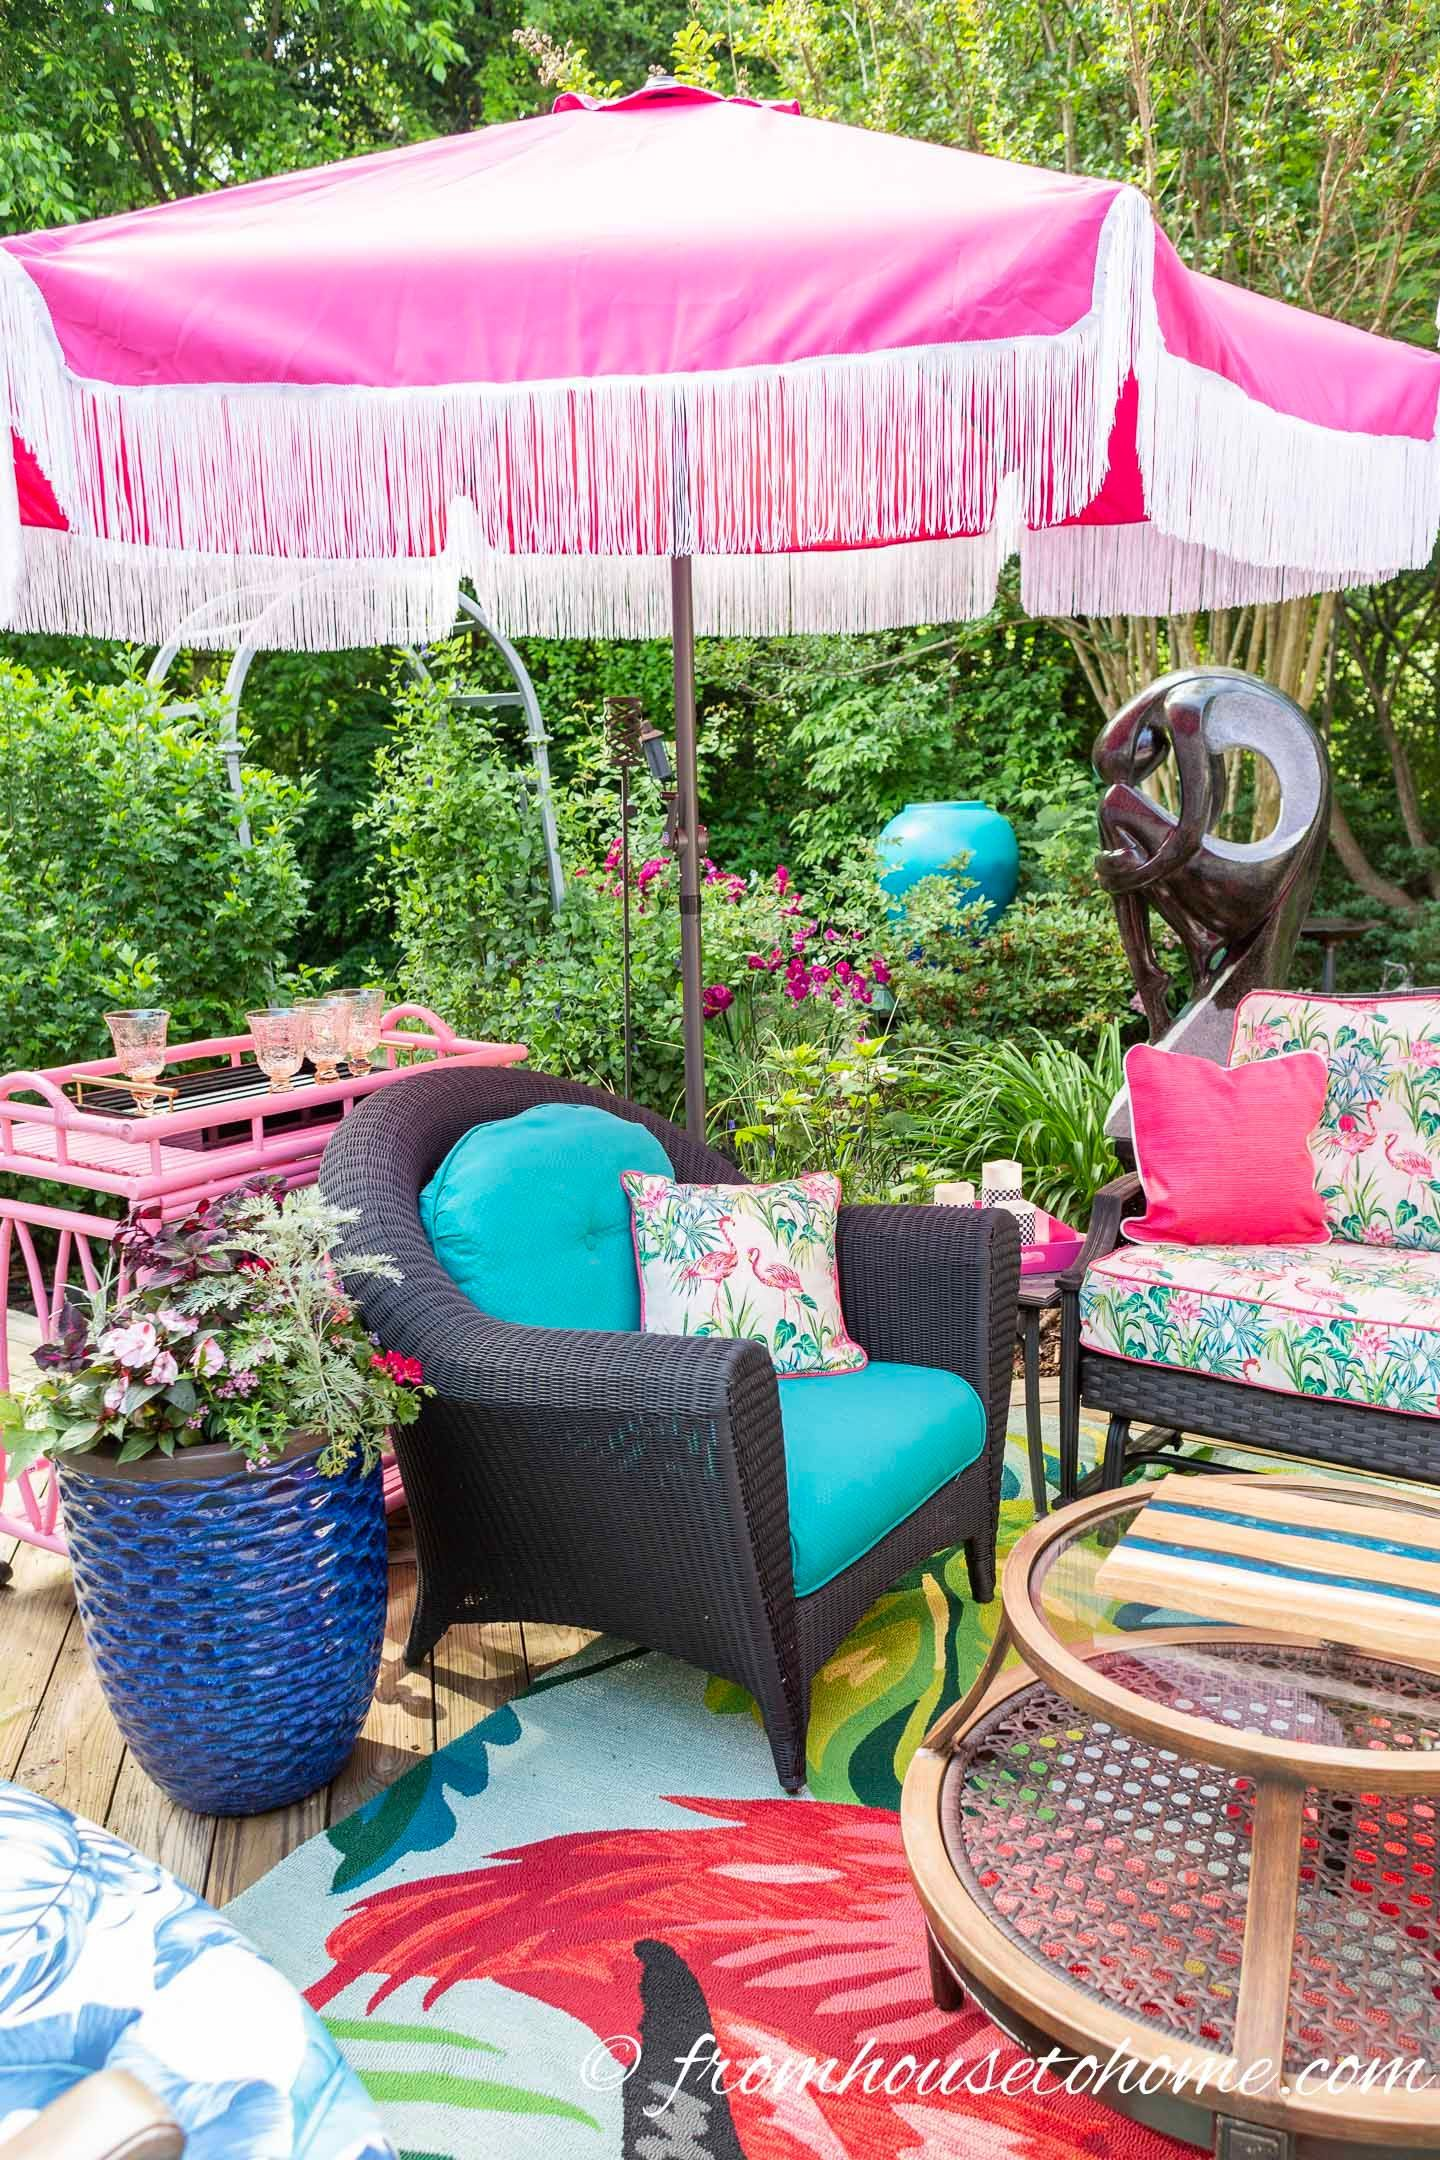 Backyard Shade Ideas 10 Shade Solutions For A Cooler Deck Or Patio Gardening From House To Home Backyard Shade Diy Patio Cover Deck Shade Backyard shade house designs